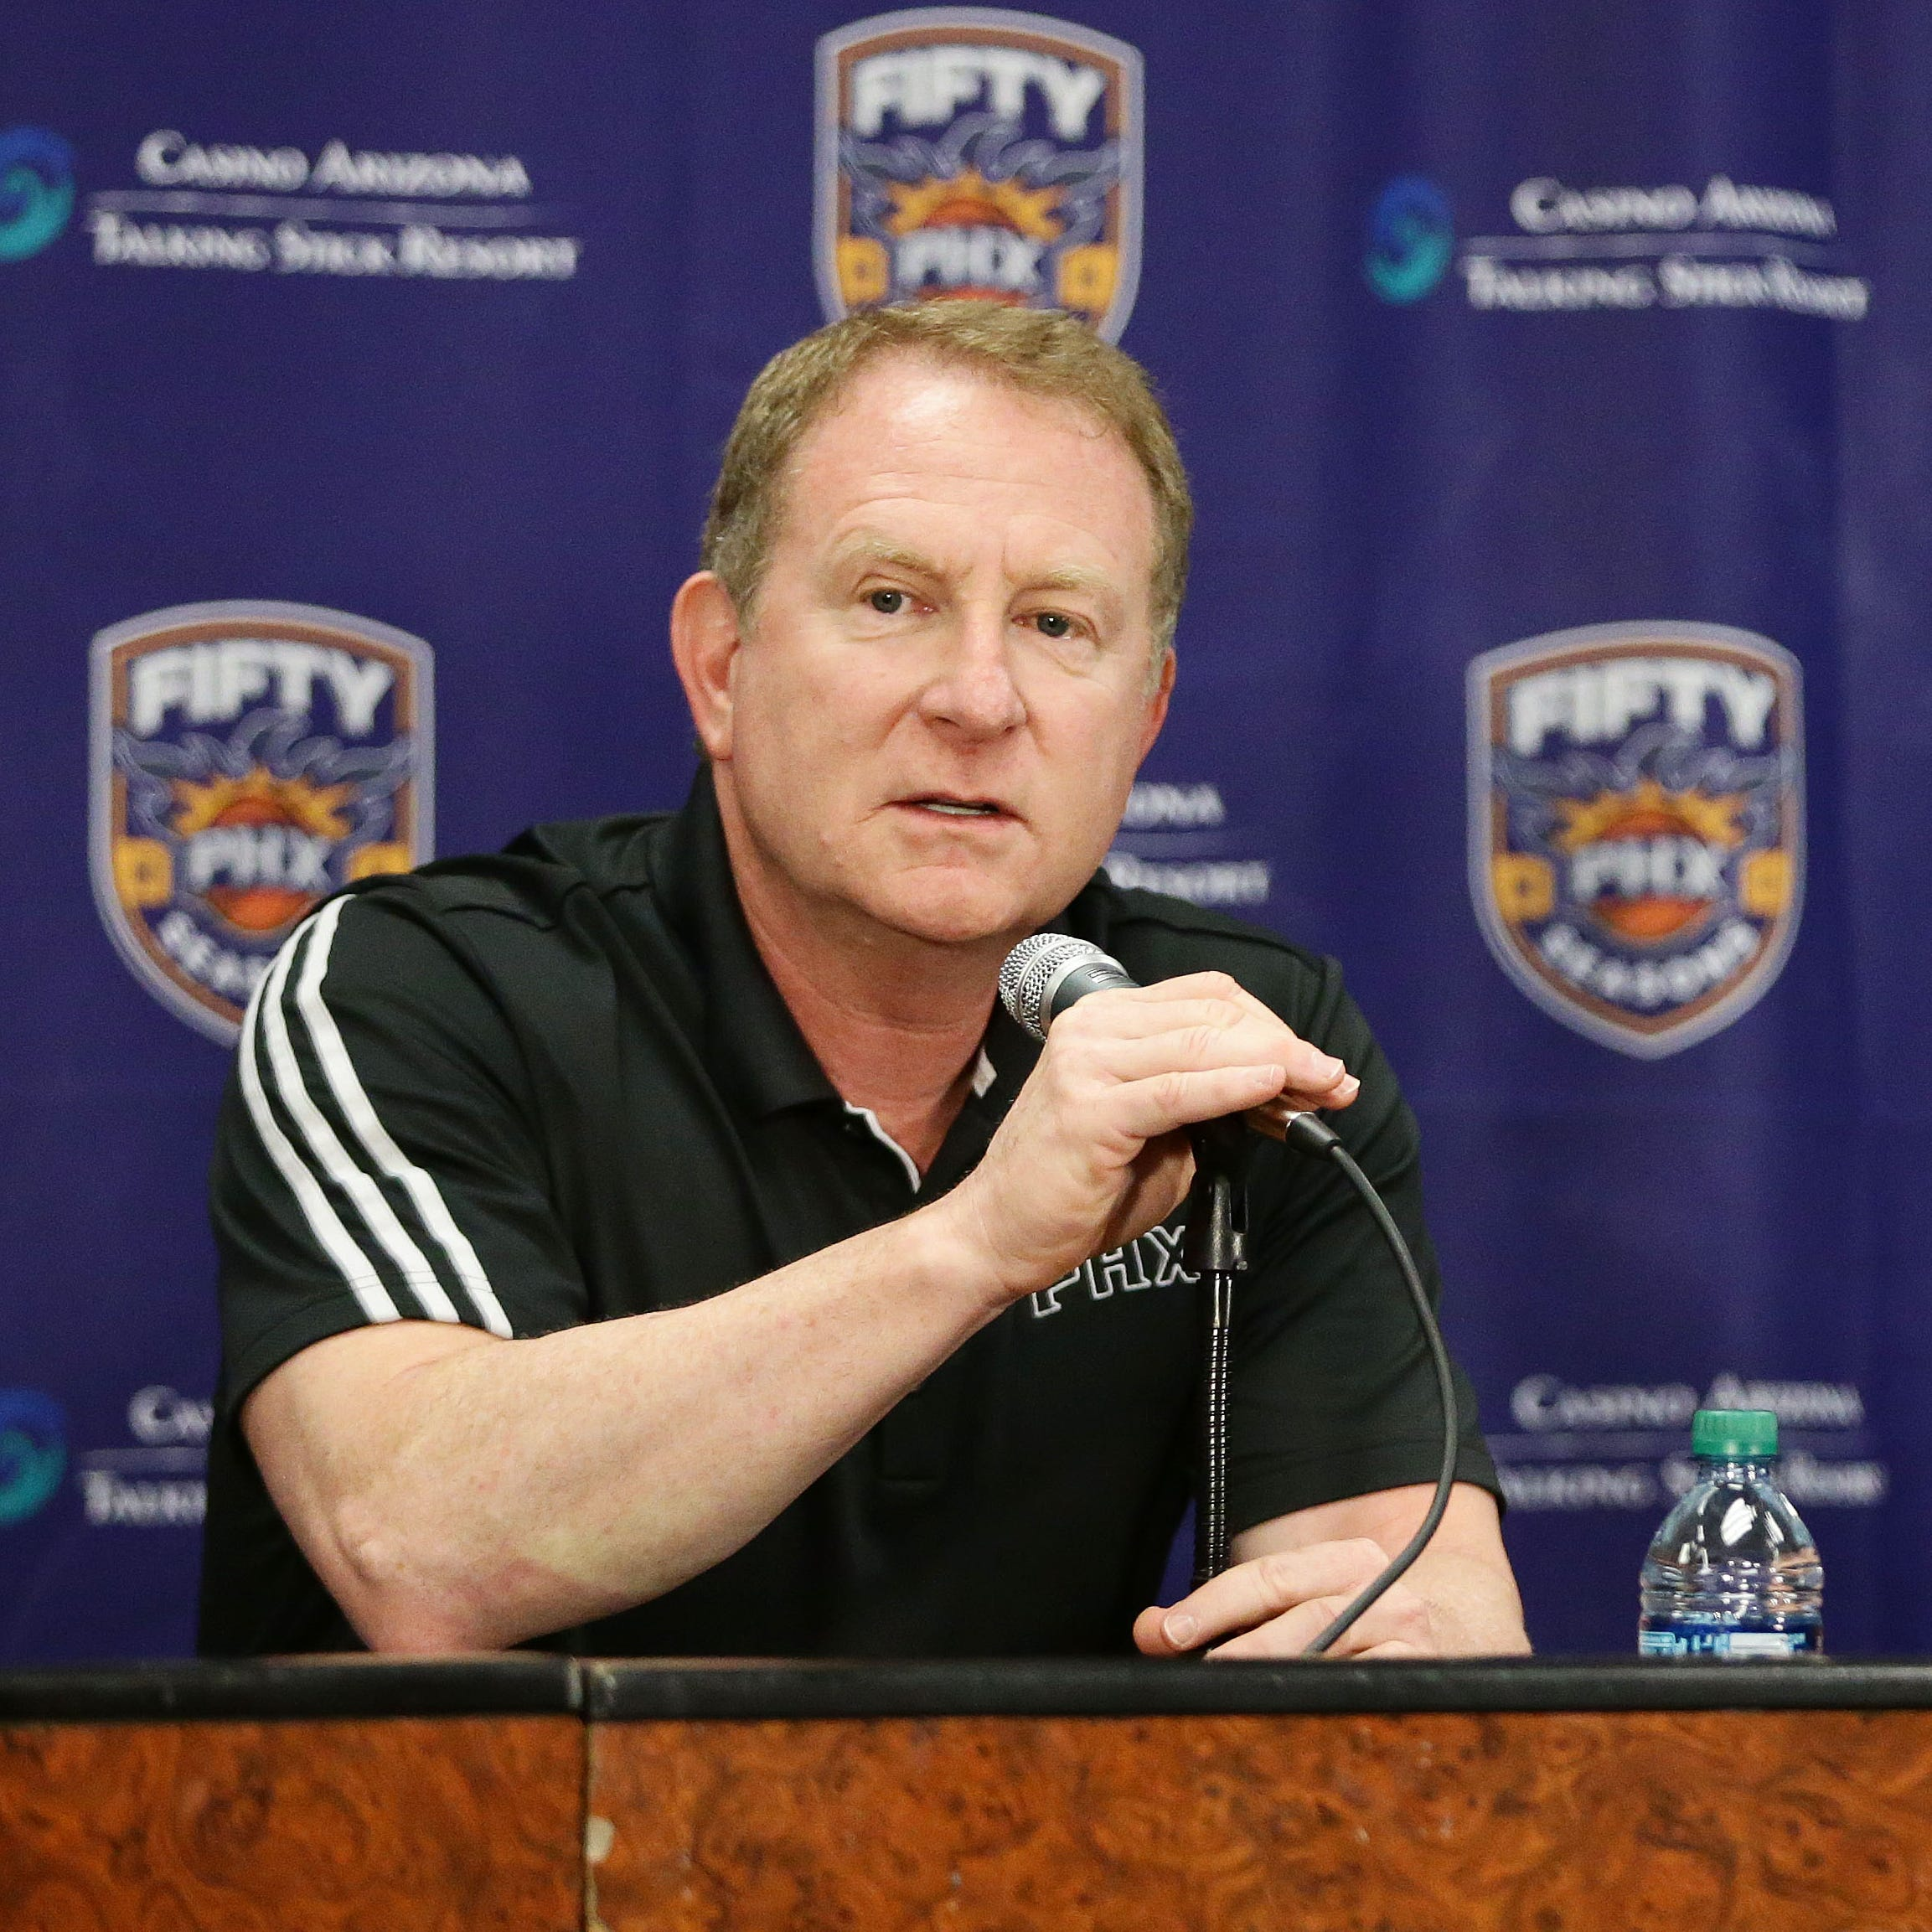 Phoenix should call Suns owner Robert Sarver's bluff about moving team